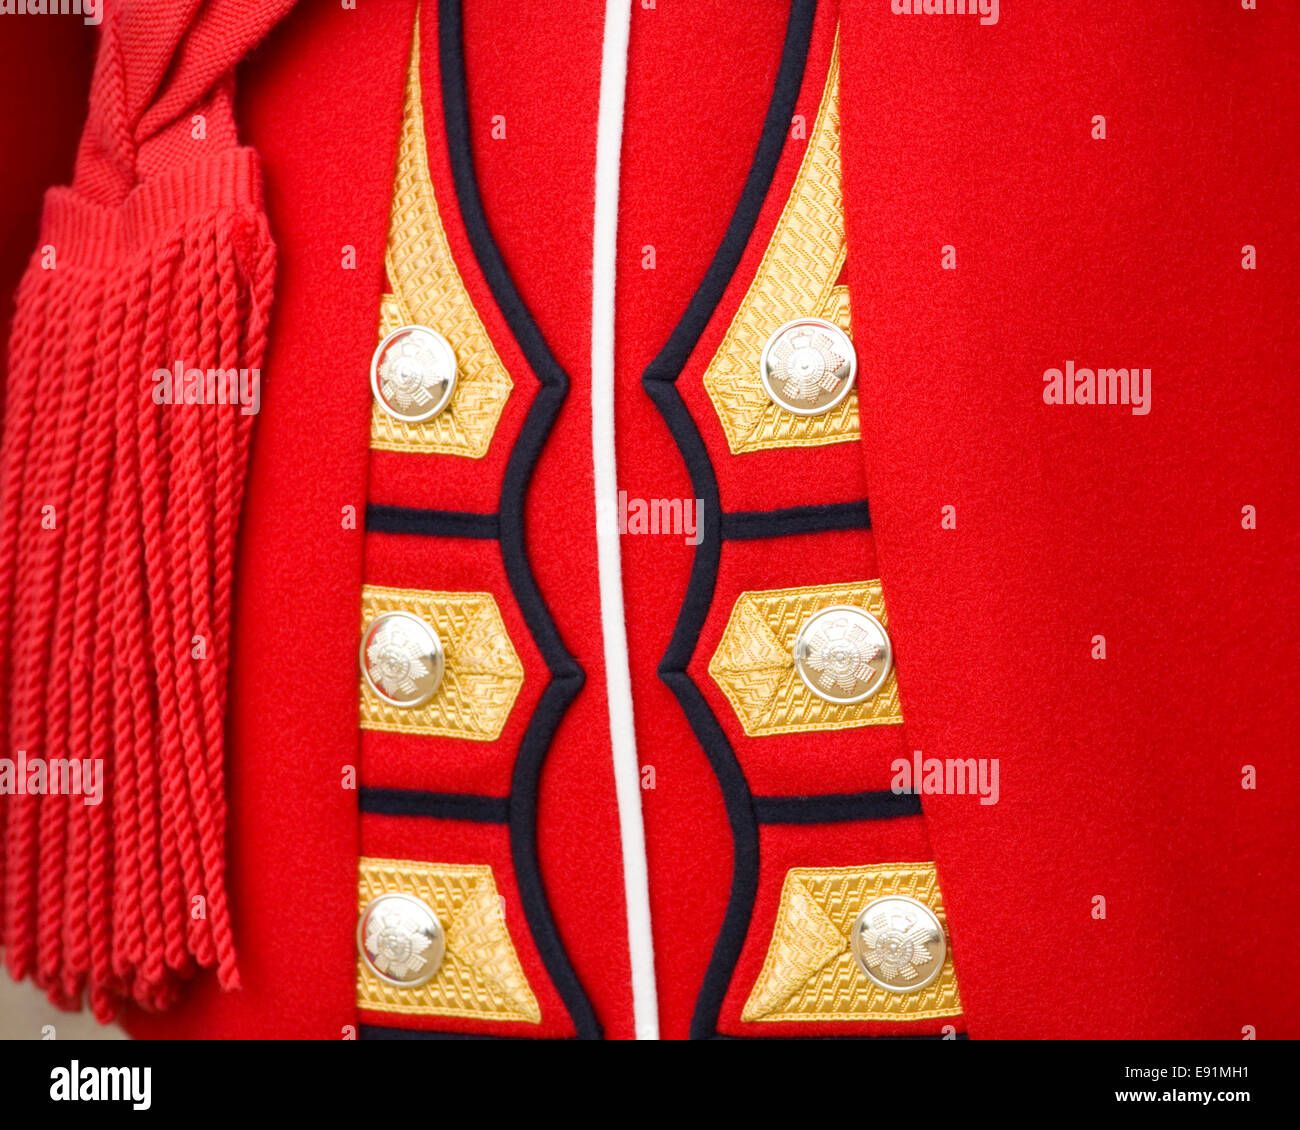 London, Greater London, England. Rear view of the red tunic of a guardsman of the Scots Guards at the Colonel's - Stock Image